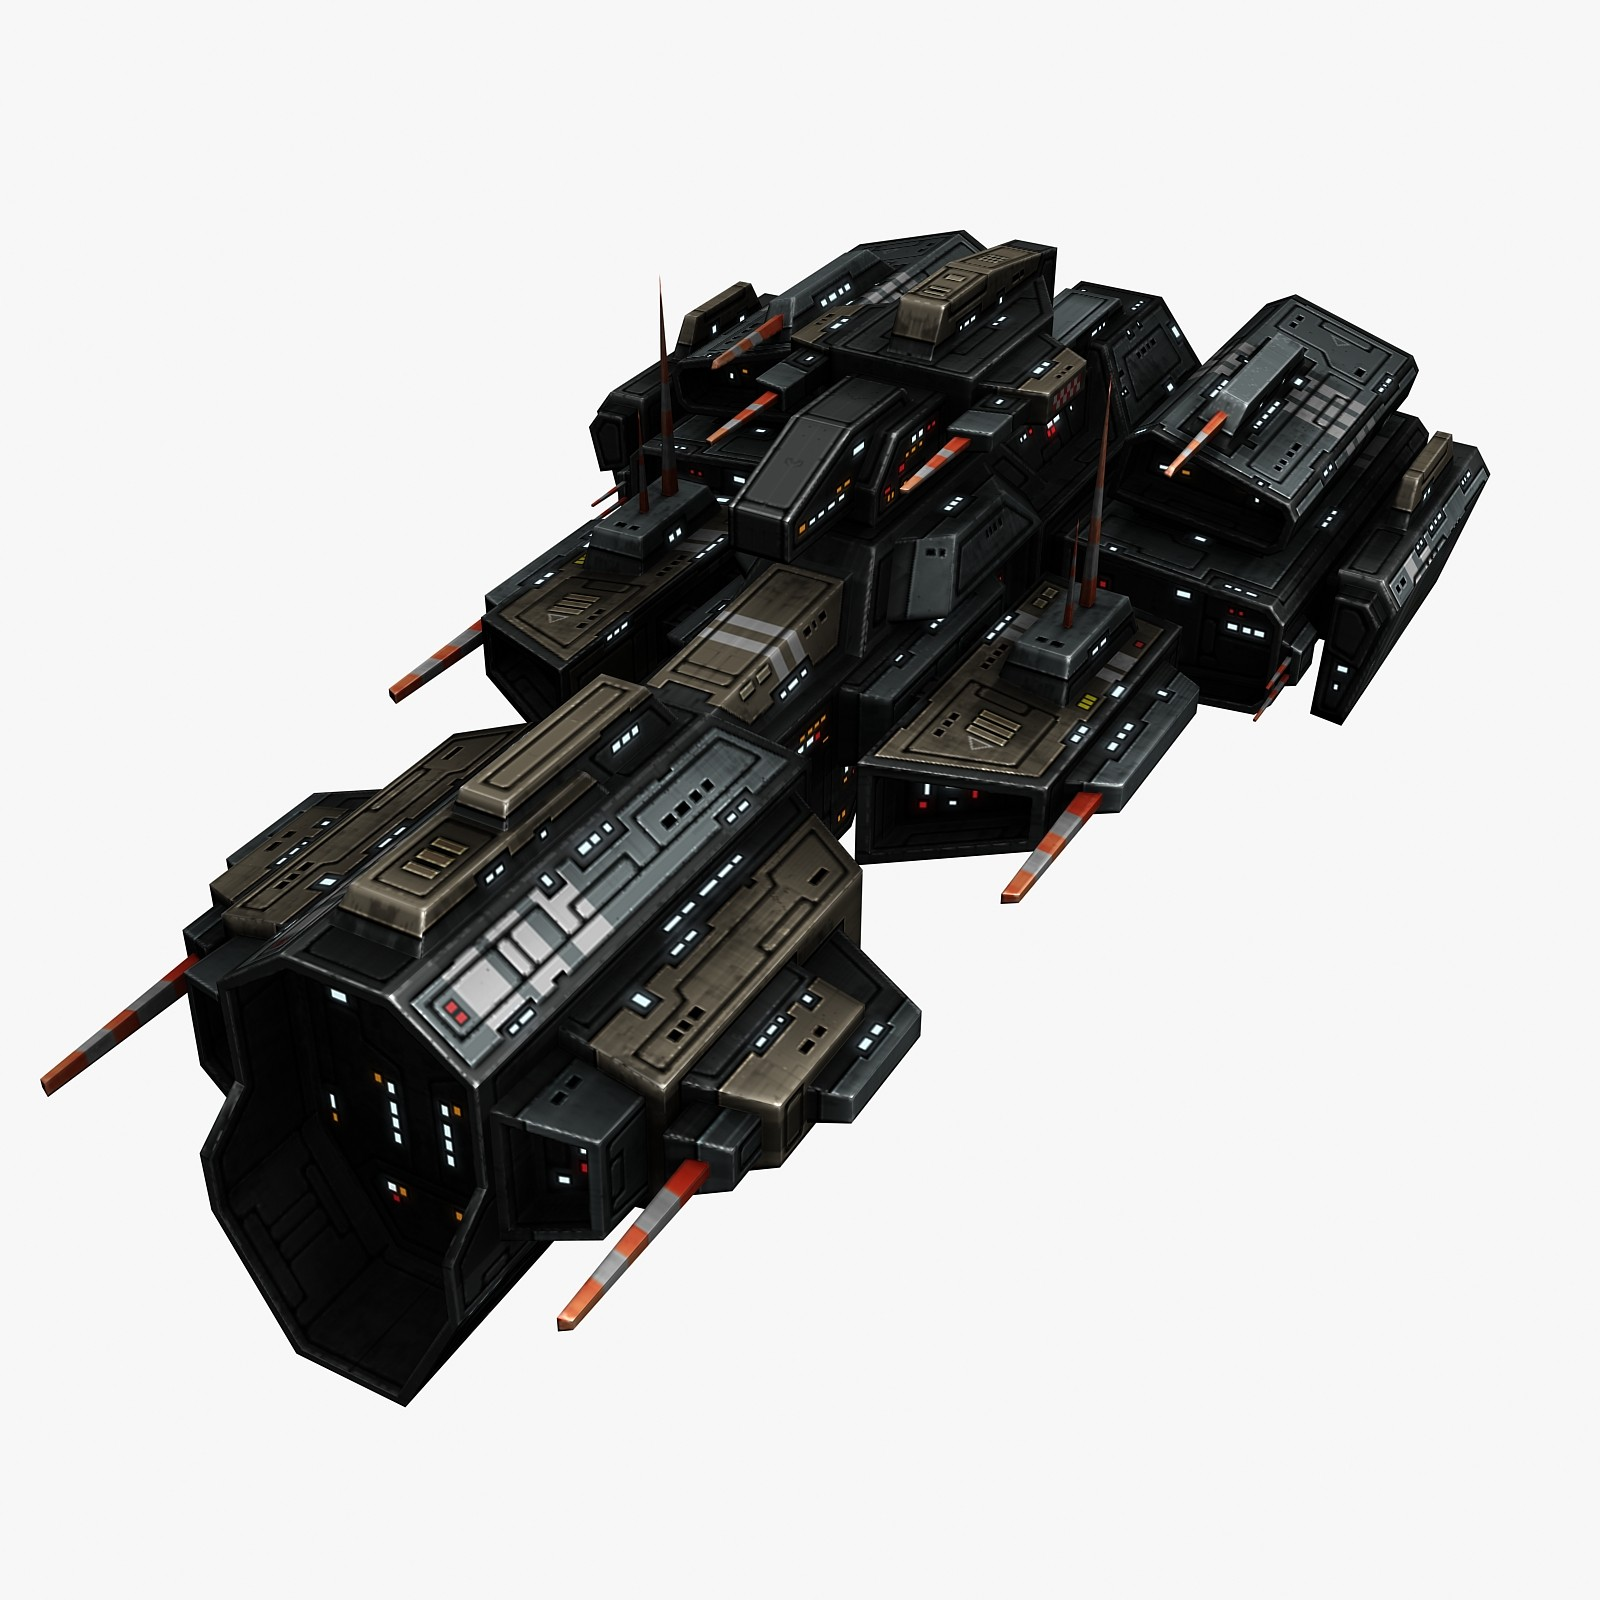 spaceship_frigate_4_preview_1.jpg